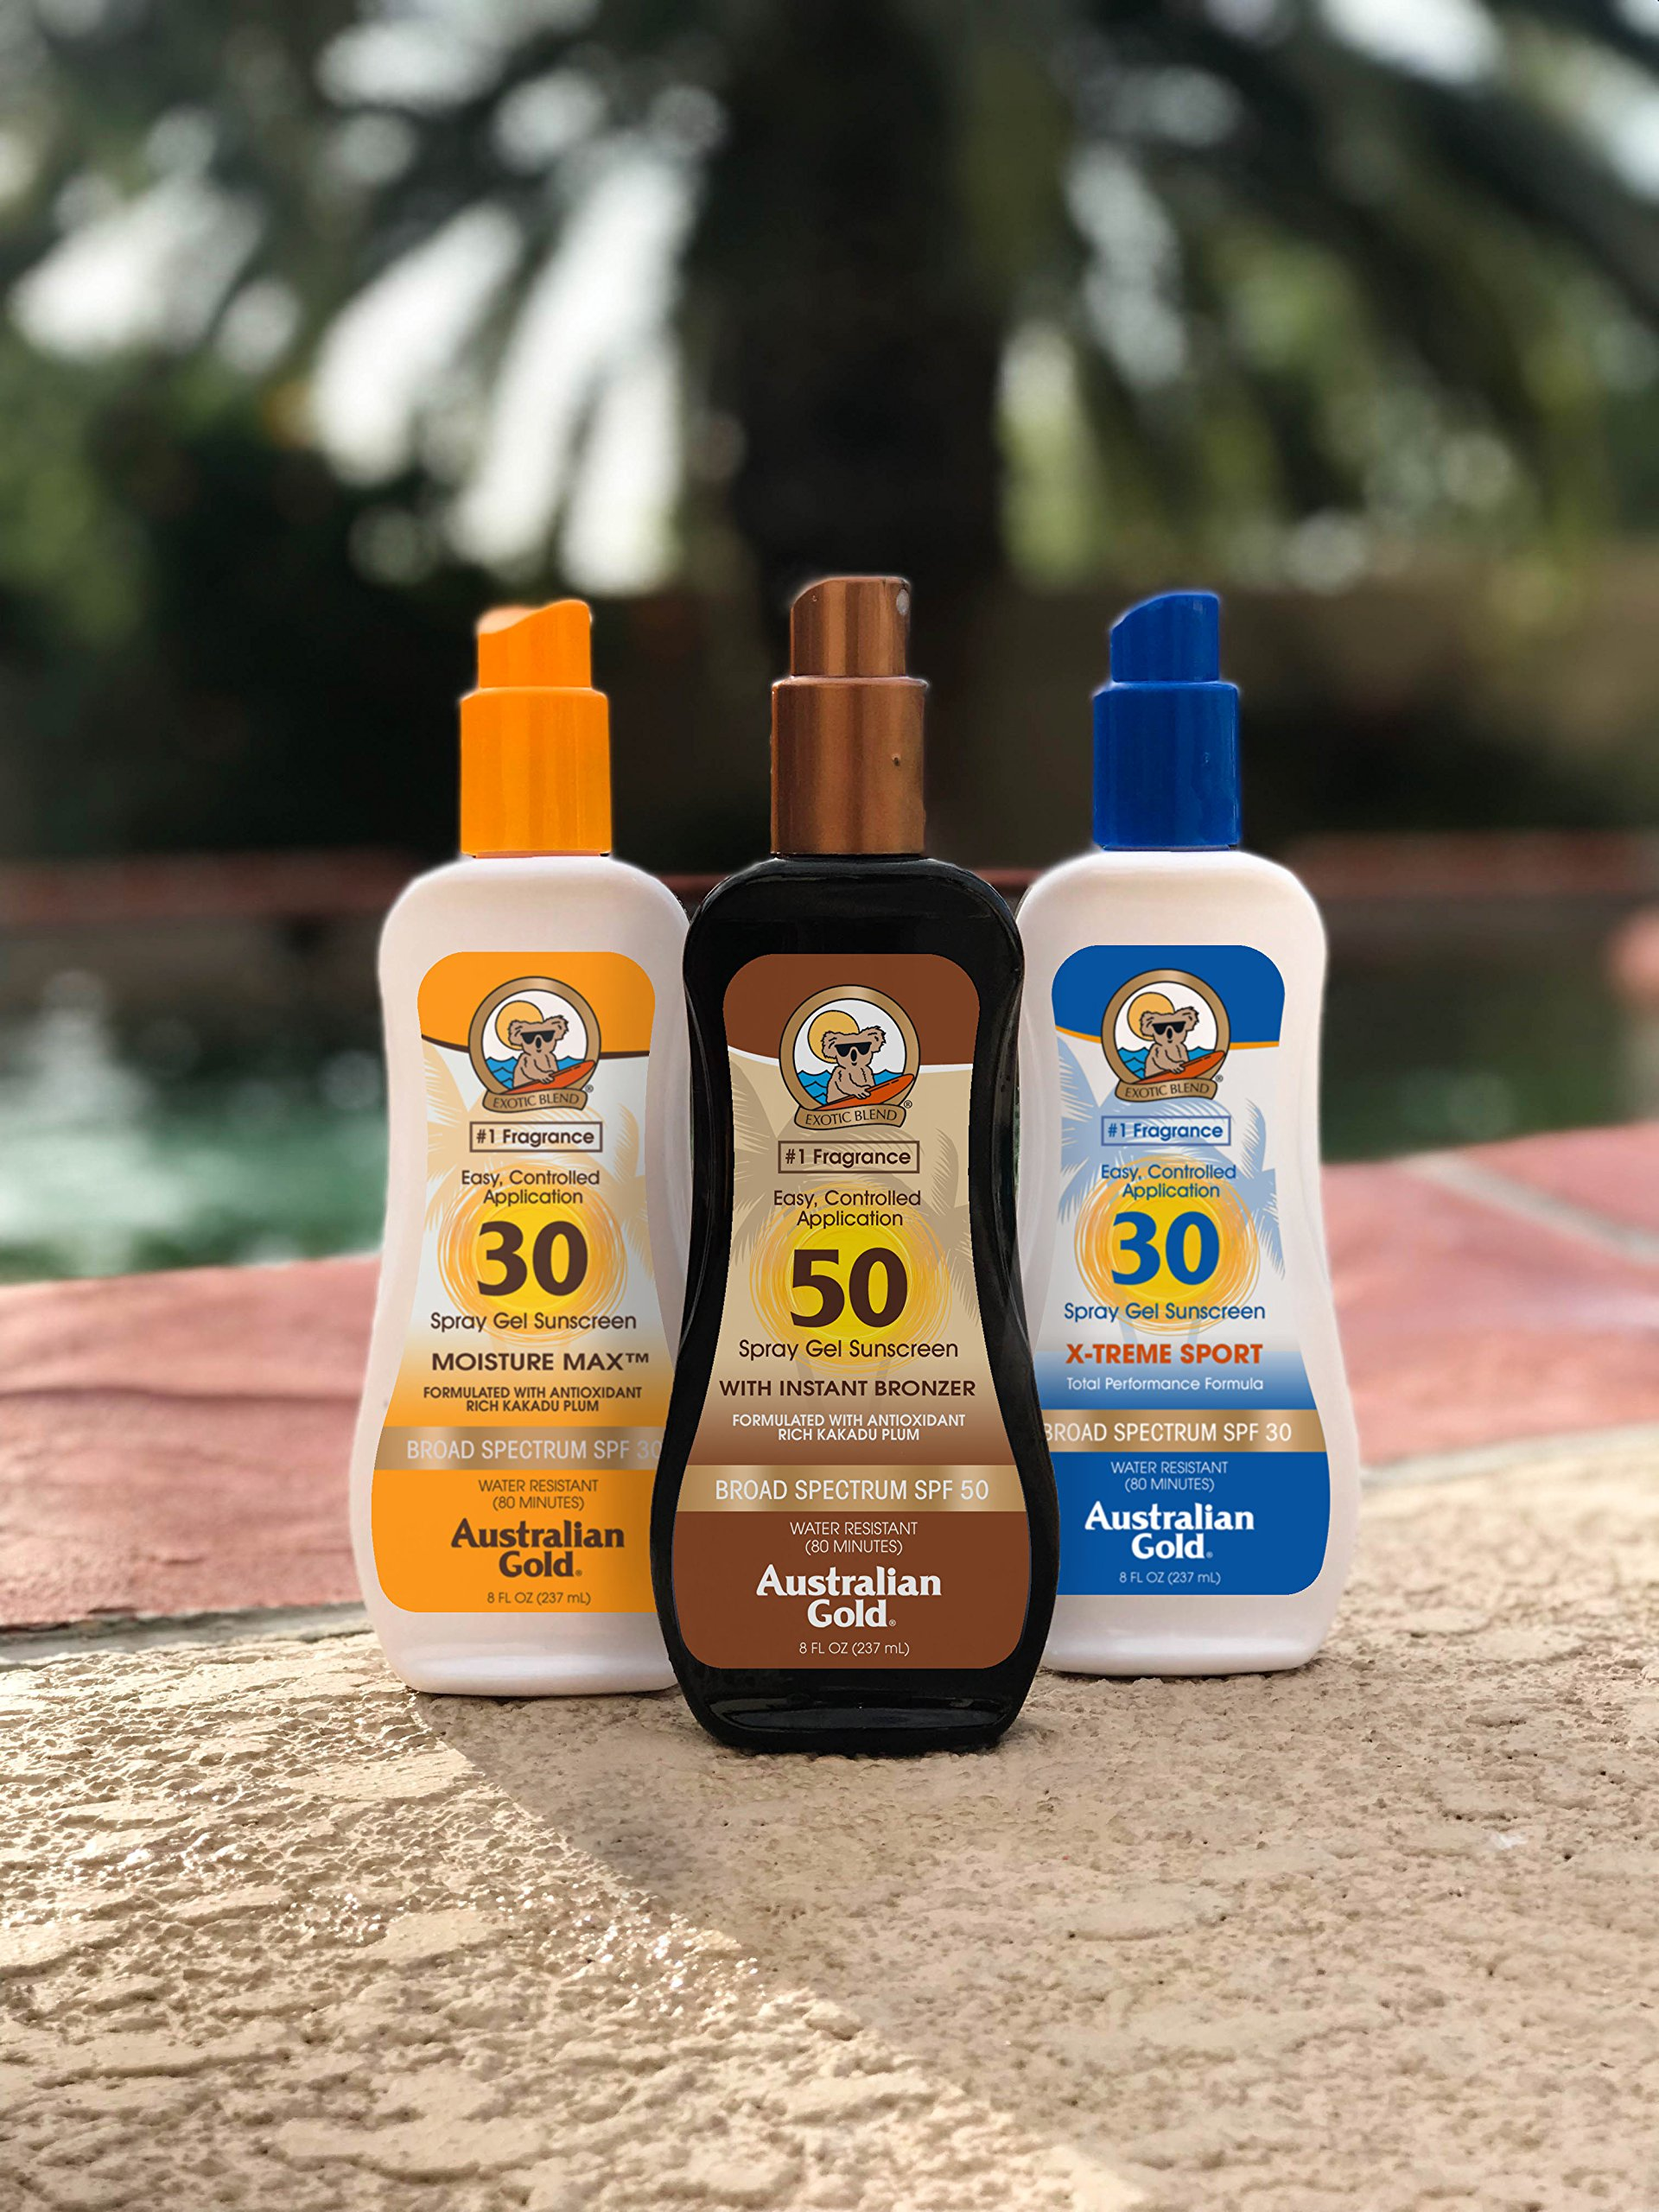 Australian Gold Spray Gel Sunscreen with Instant Bronzer SPF 50, 8 Ounce   Moisturize & Hydrate Skin   Broad Spectrum   Water Resistant